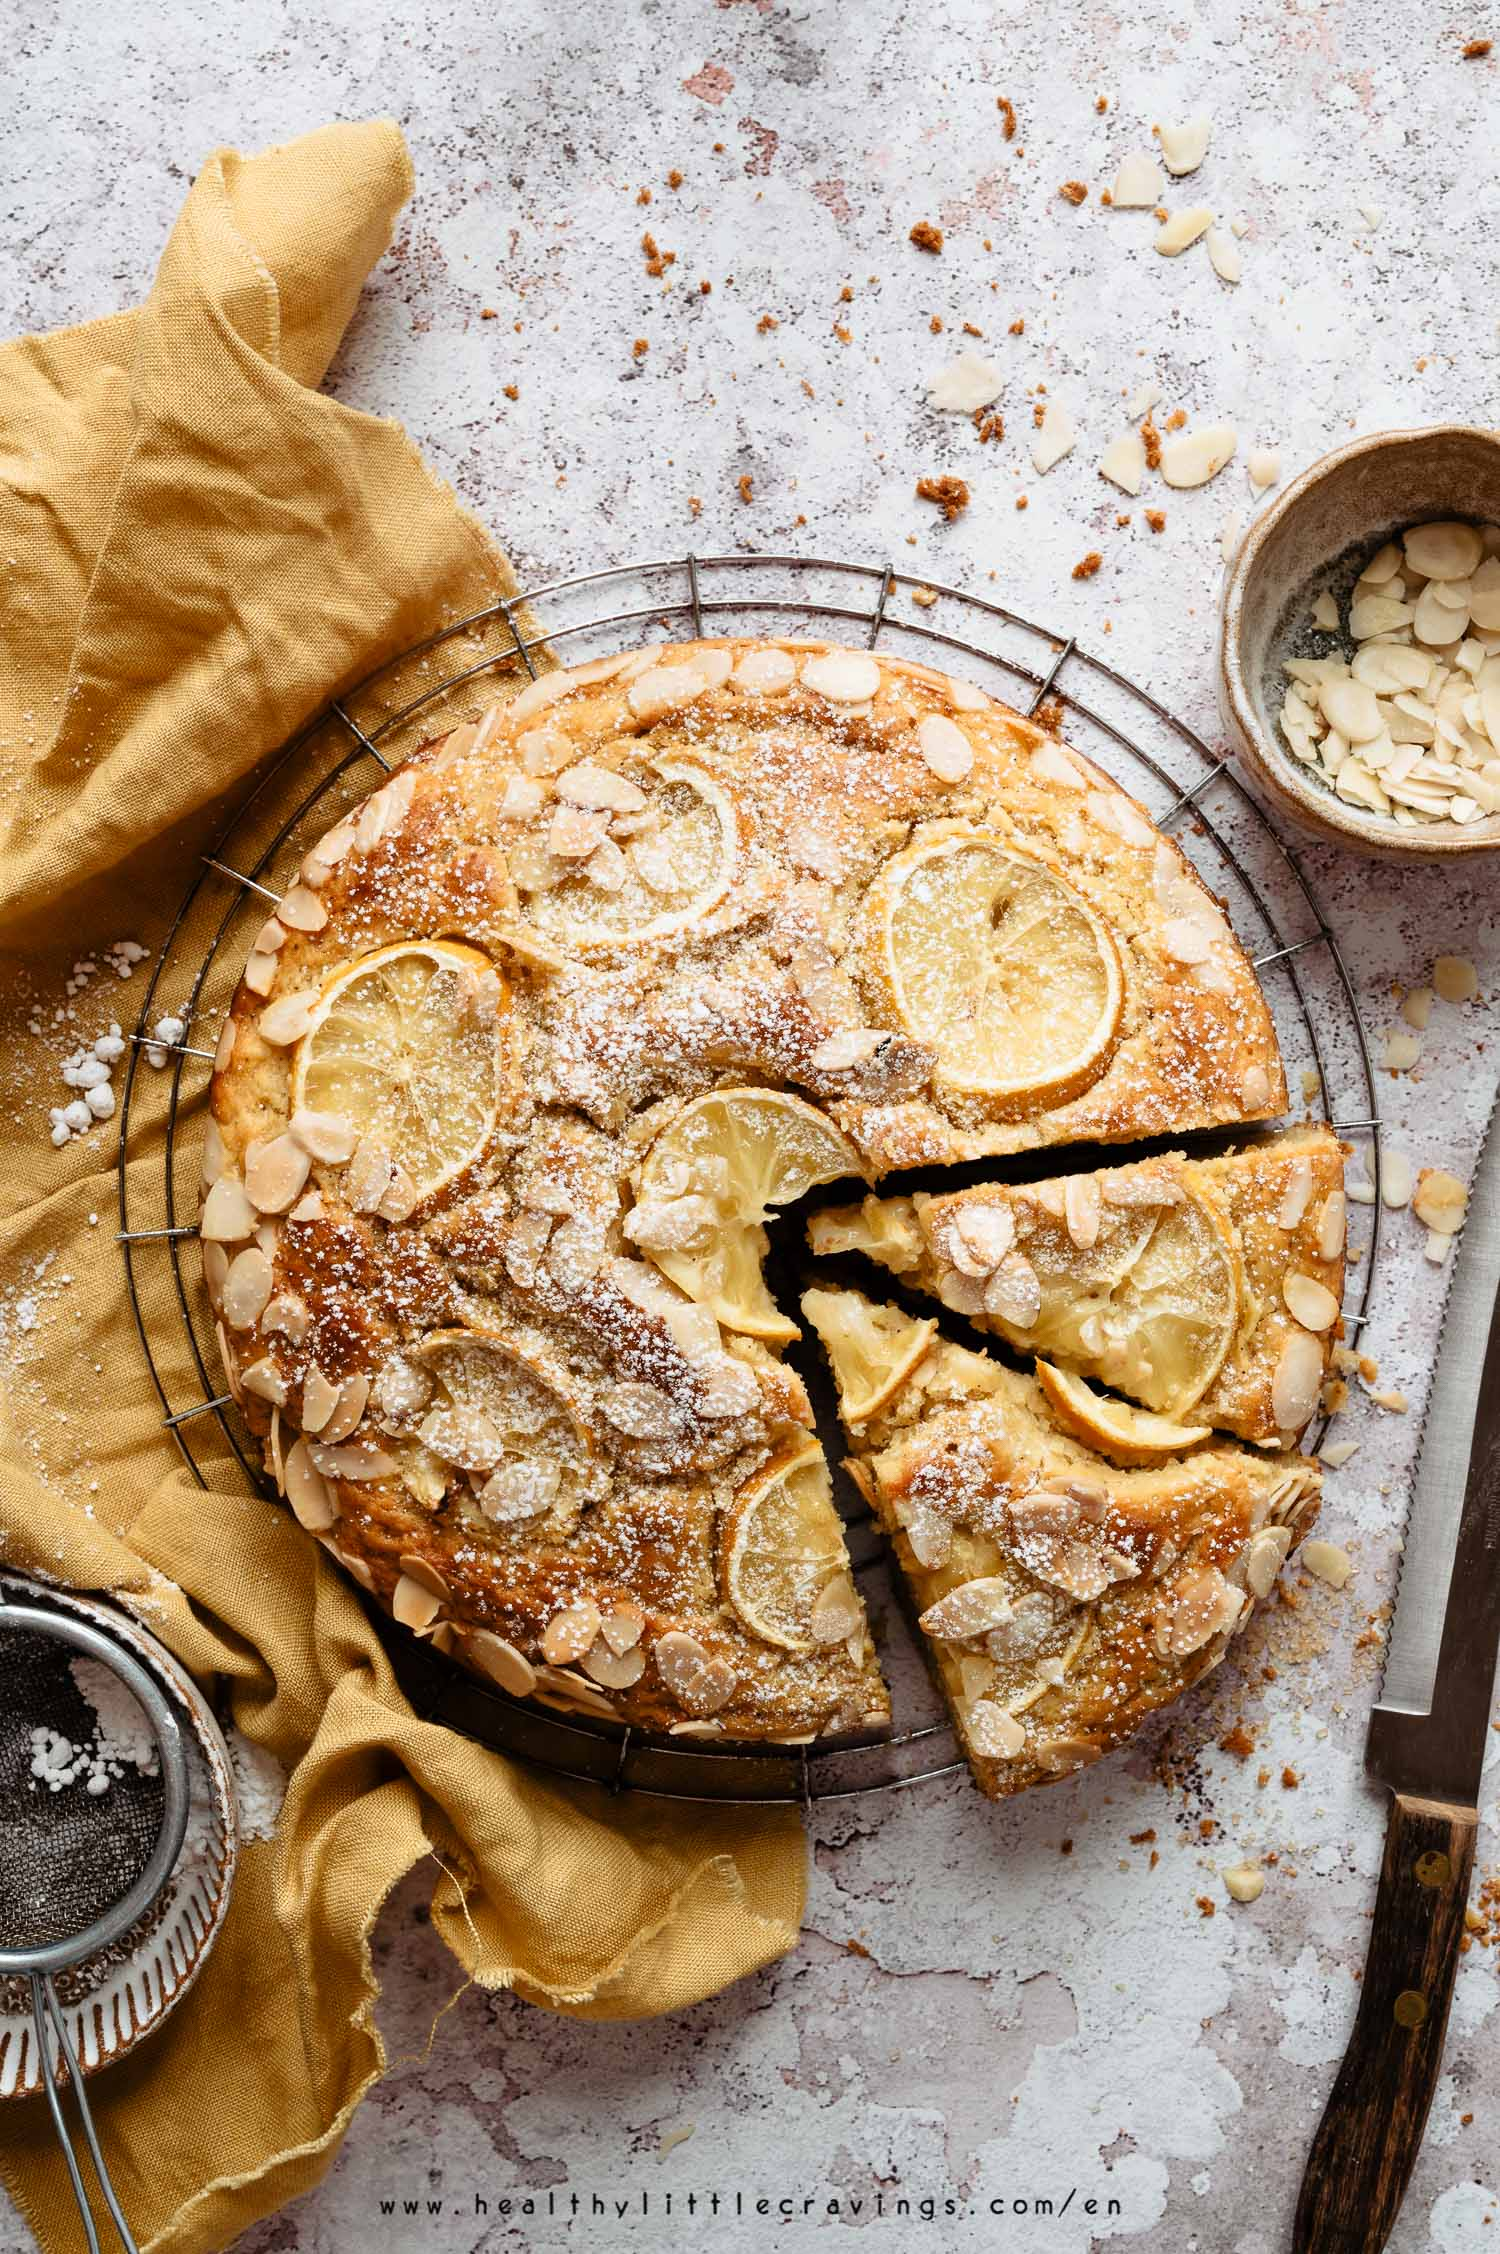 Ricotta cake with slices of lemon on top